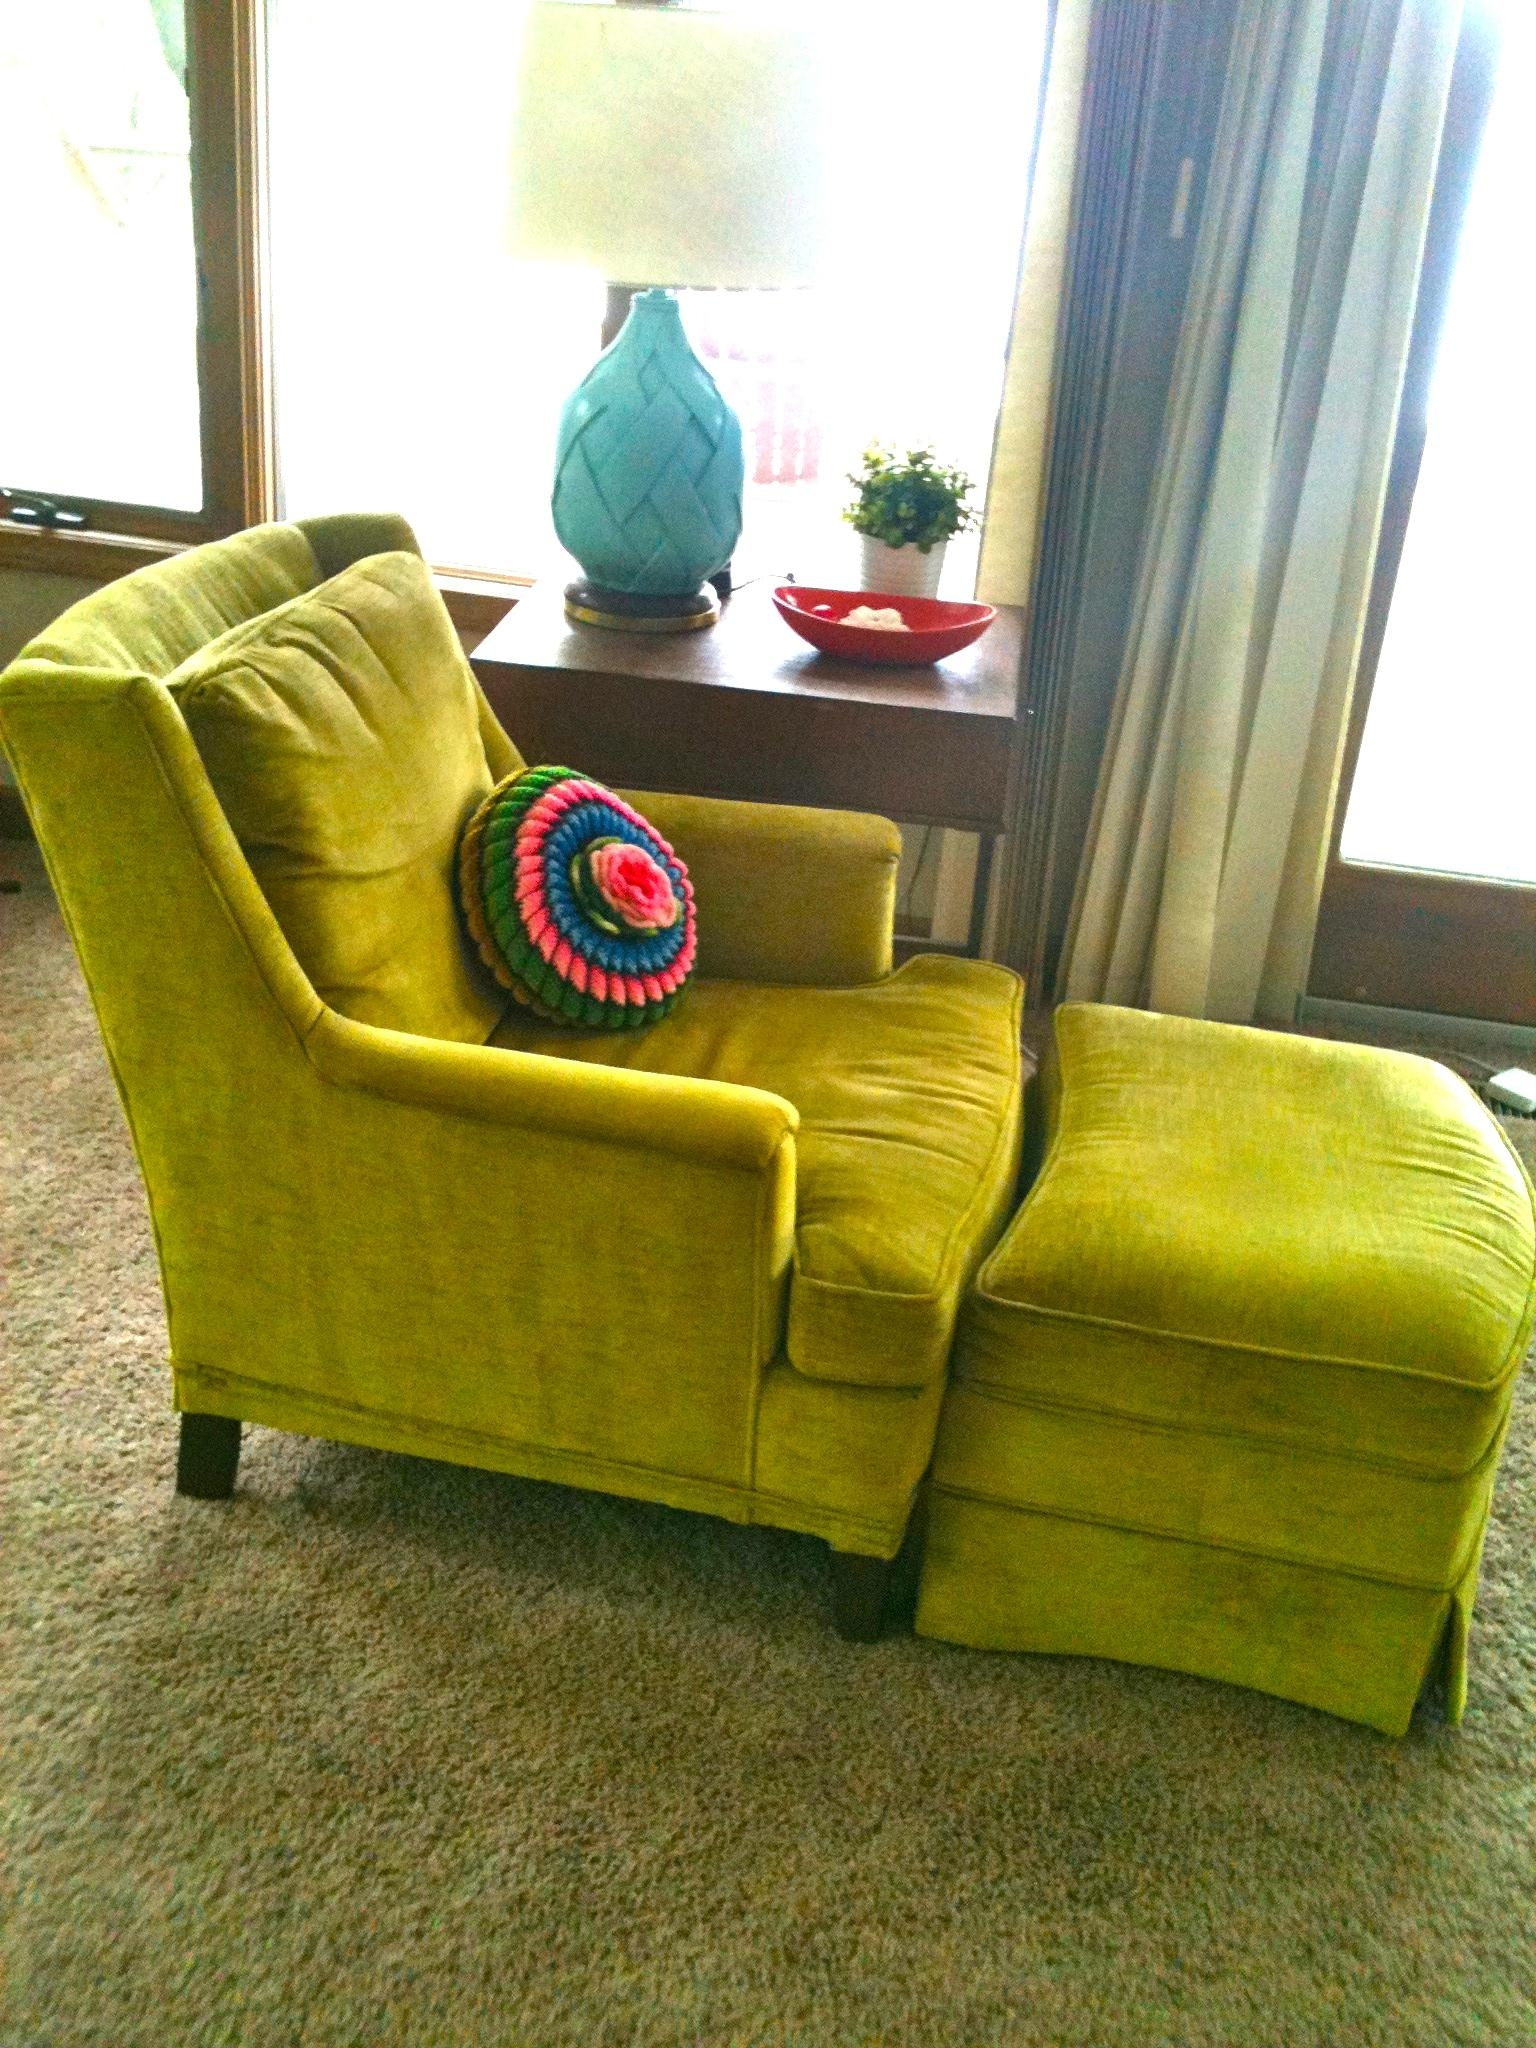 Chartreuse Sofa With Concept Hd Pictures 27445 | Kengire Within Chartreuse Sofas (View 10 of 20)